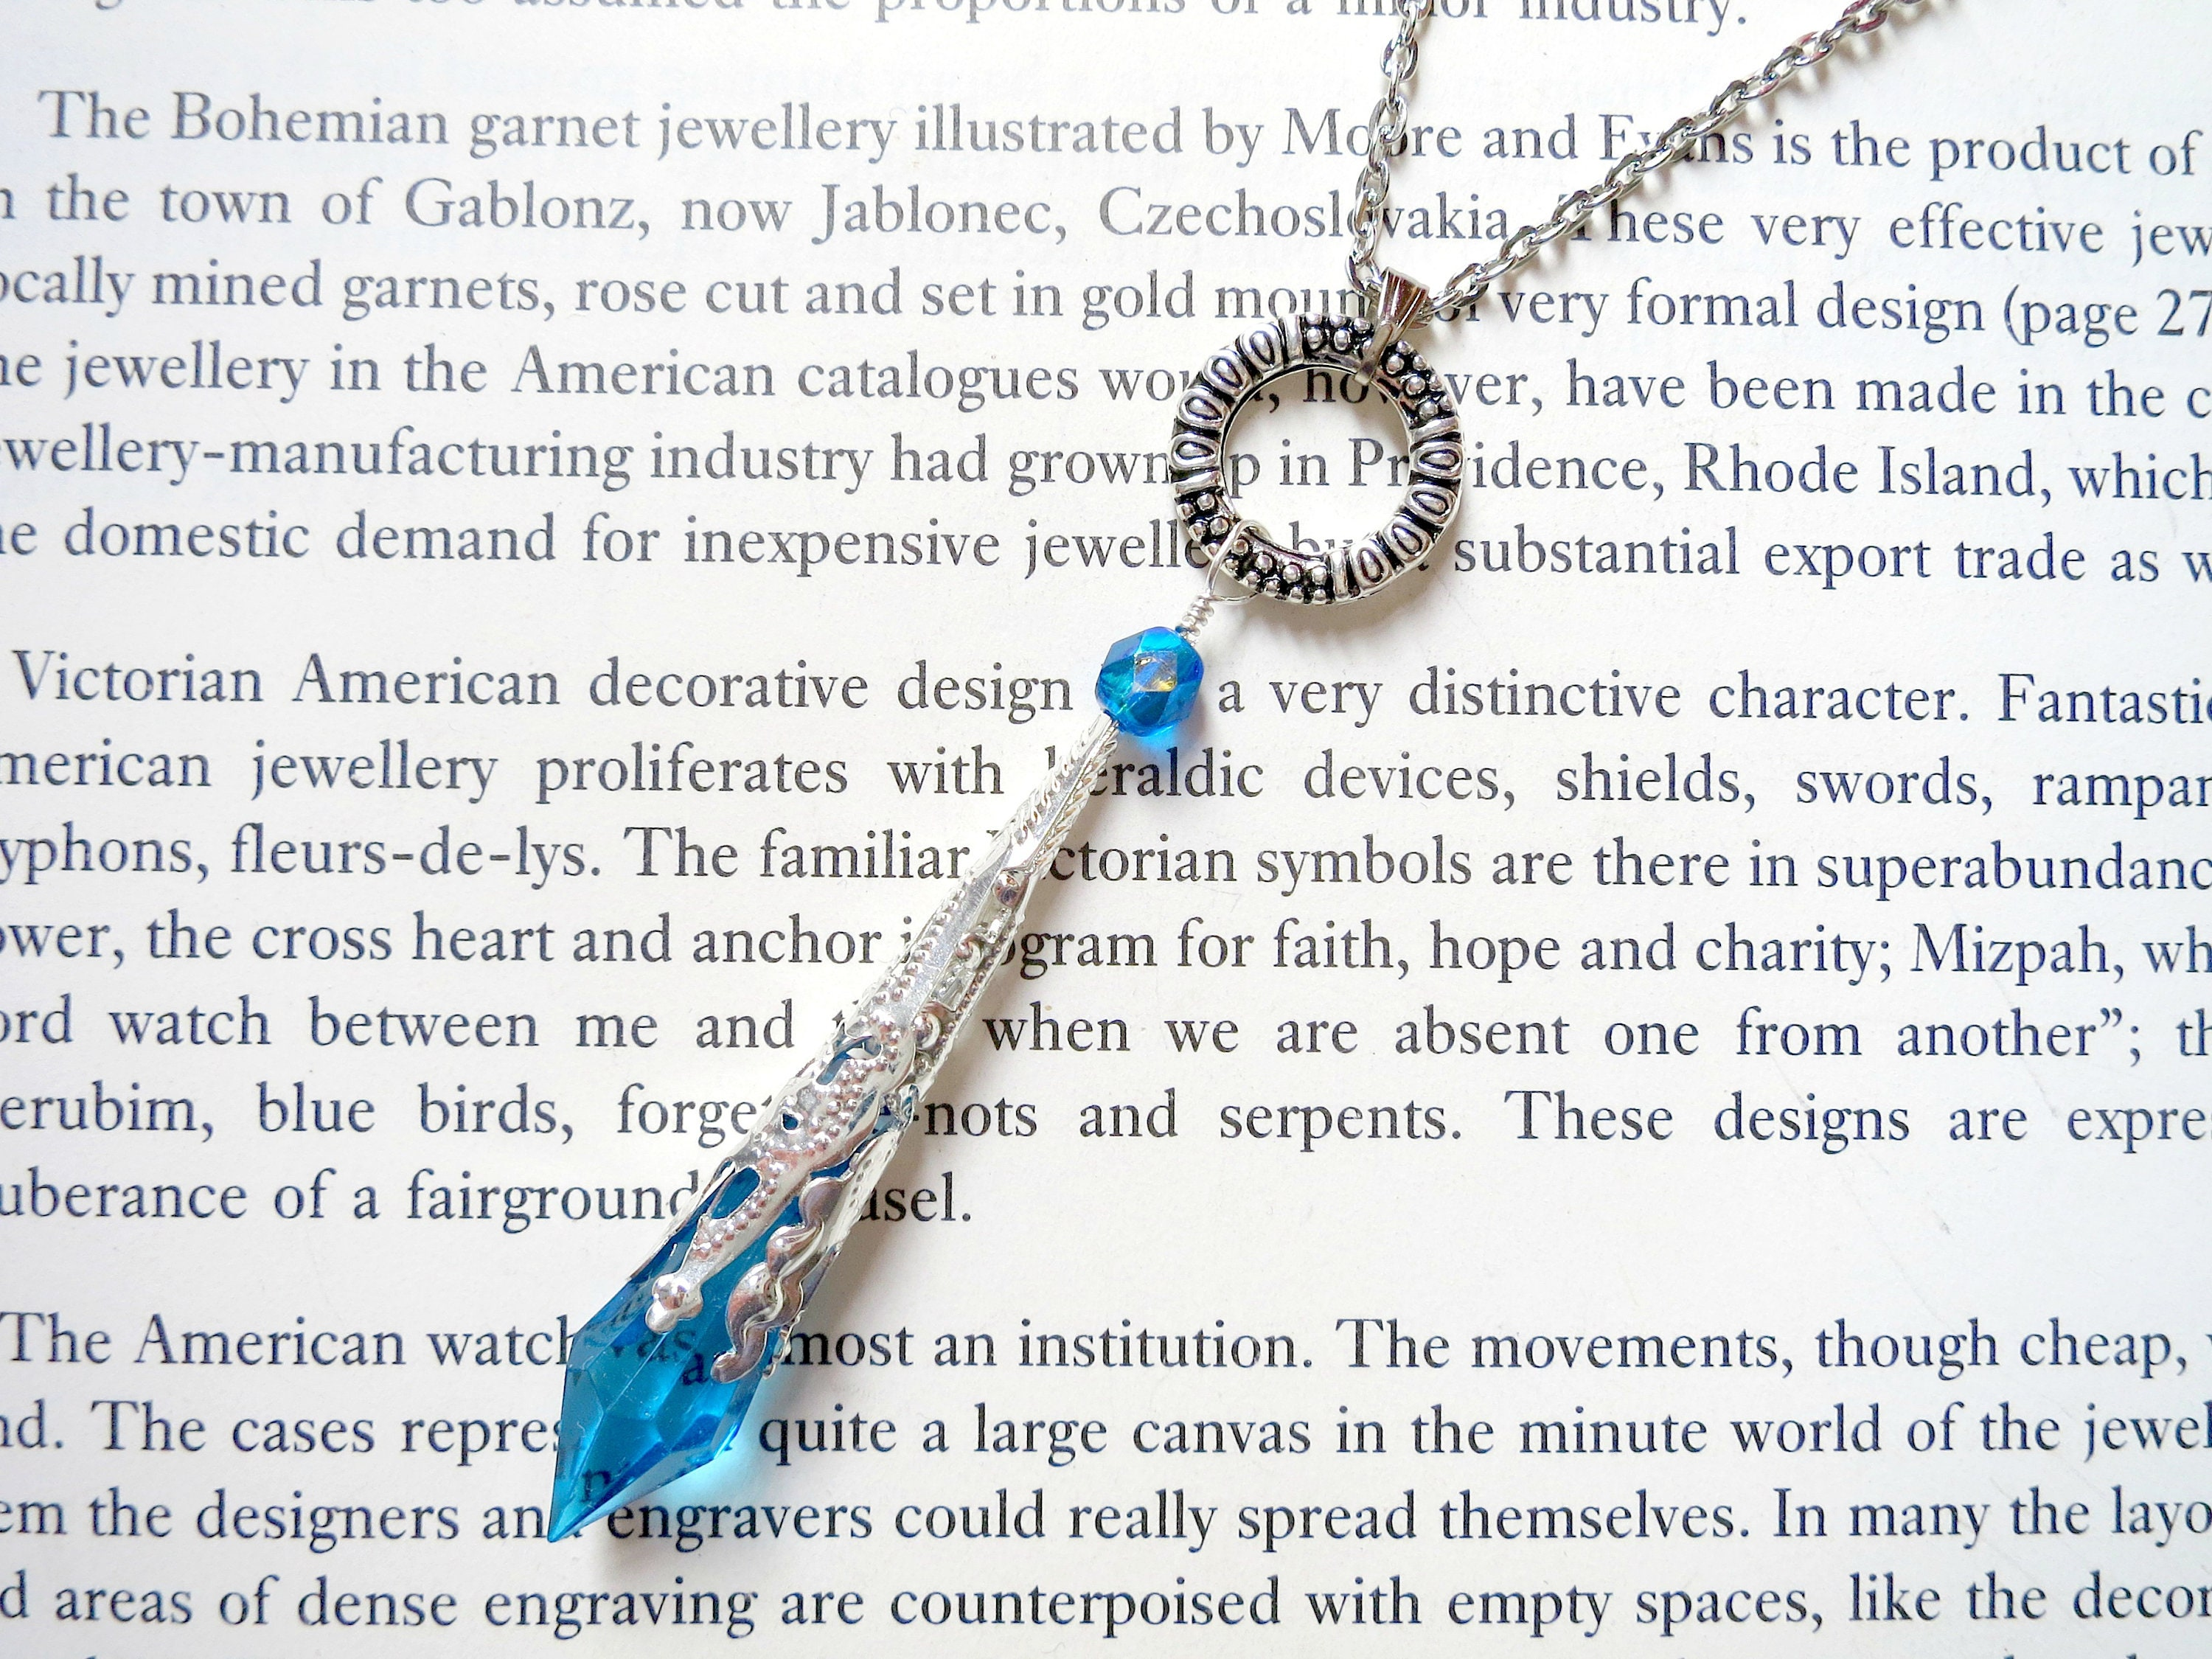 Teal Blue Necklace Silver Filigree Acrylic Crystal Teardrop Pendant Art  Nouveau Bohemian Jewelry Vintage Inspired Gifts For Women Under 15